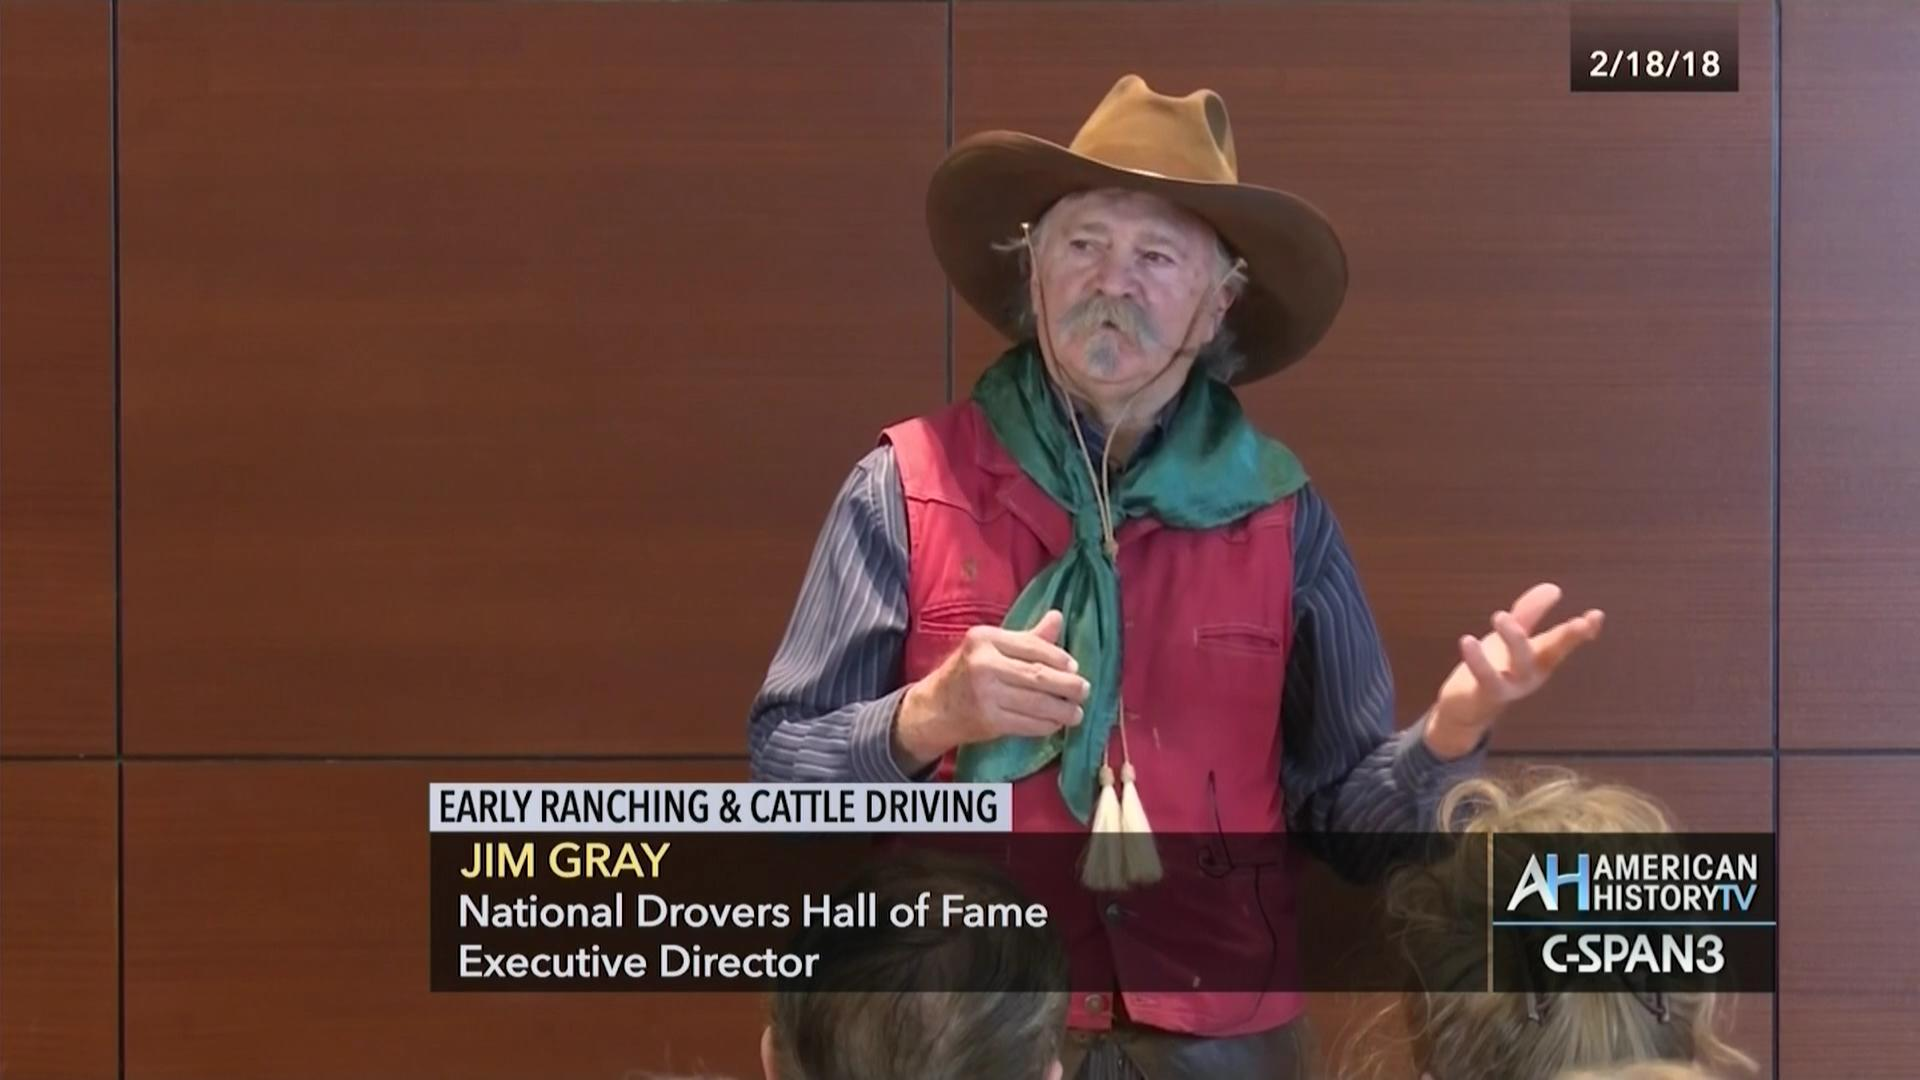 763bbb29 Early Ranching and Cattle Driving | C-SPAN.org